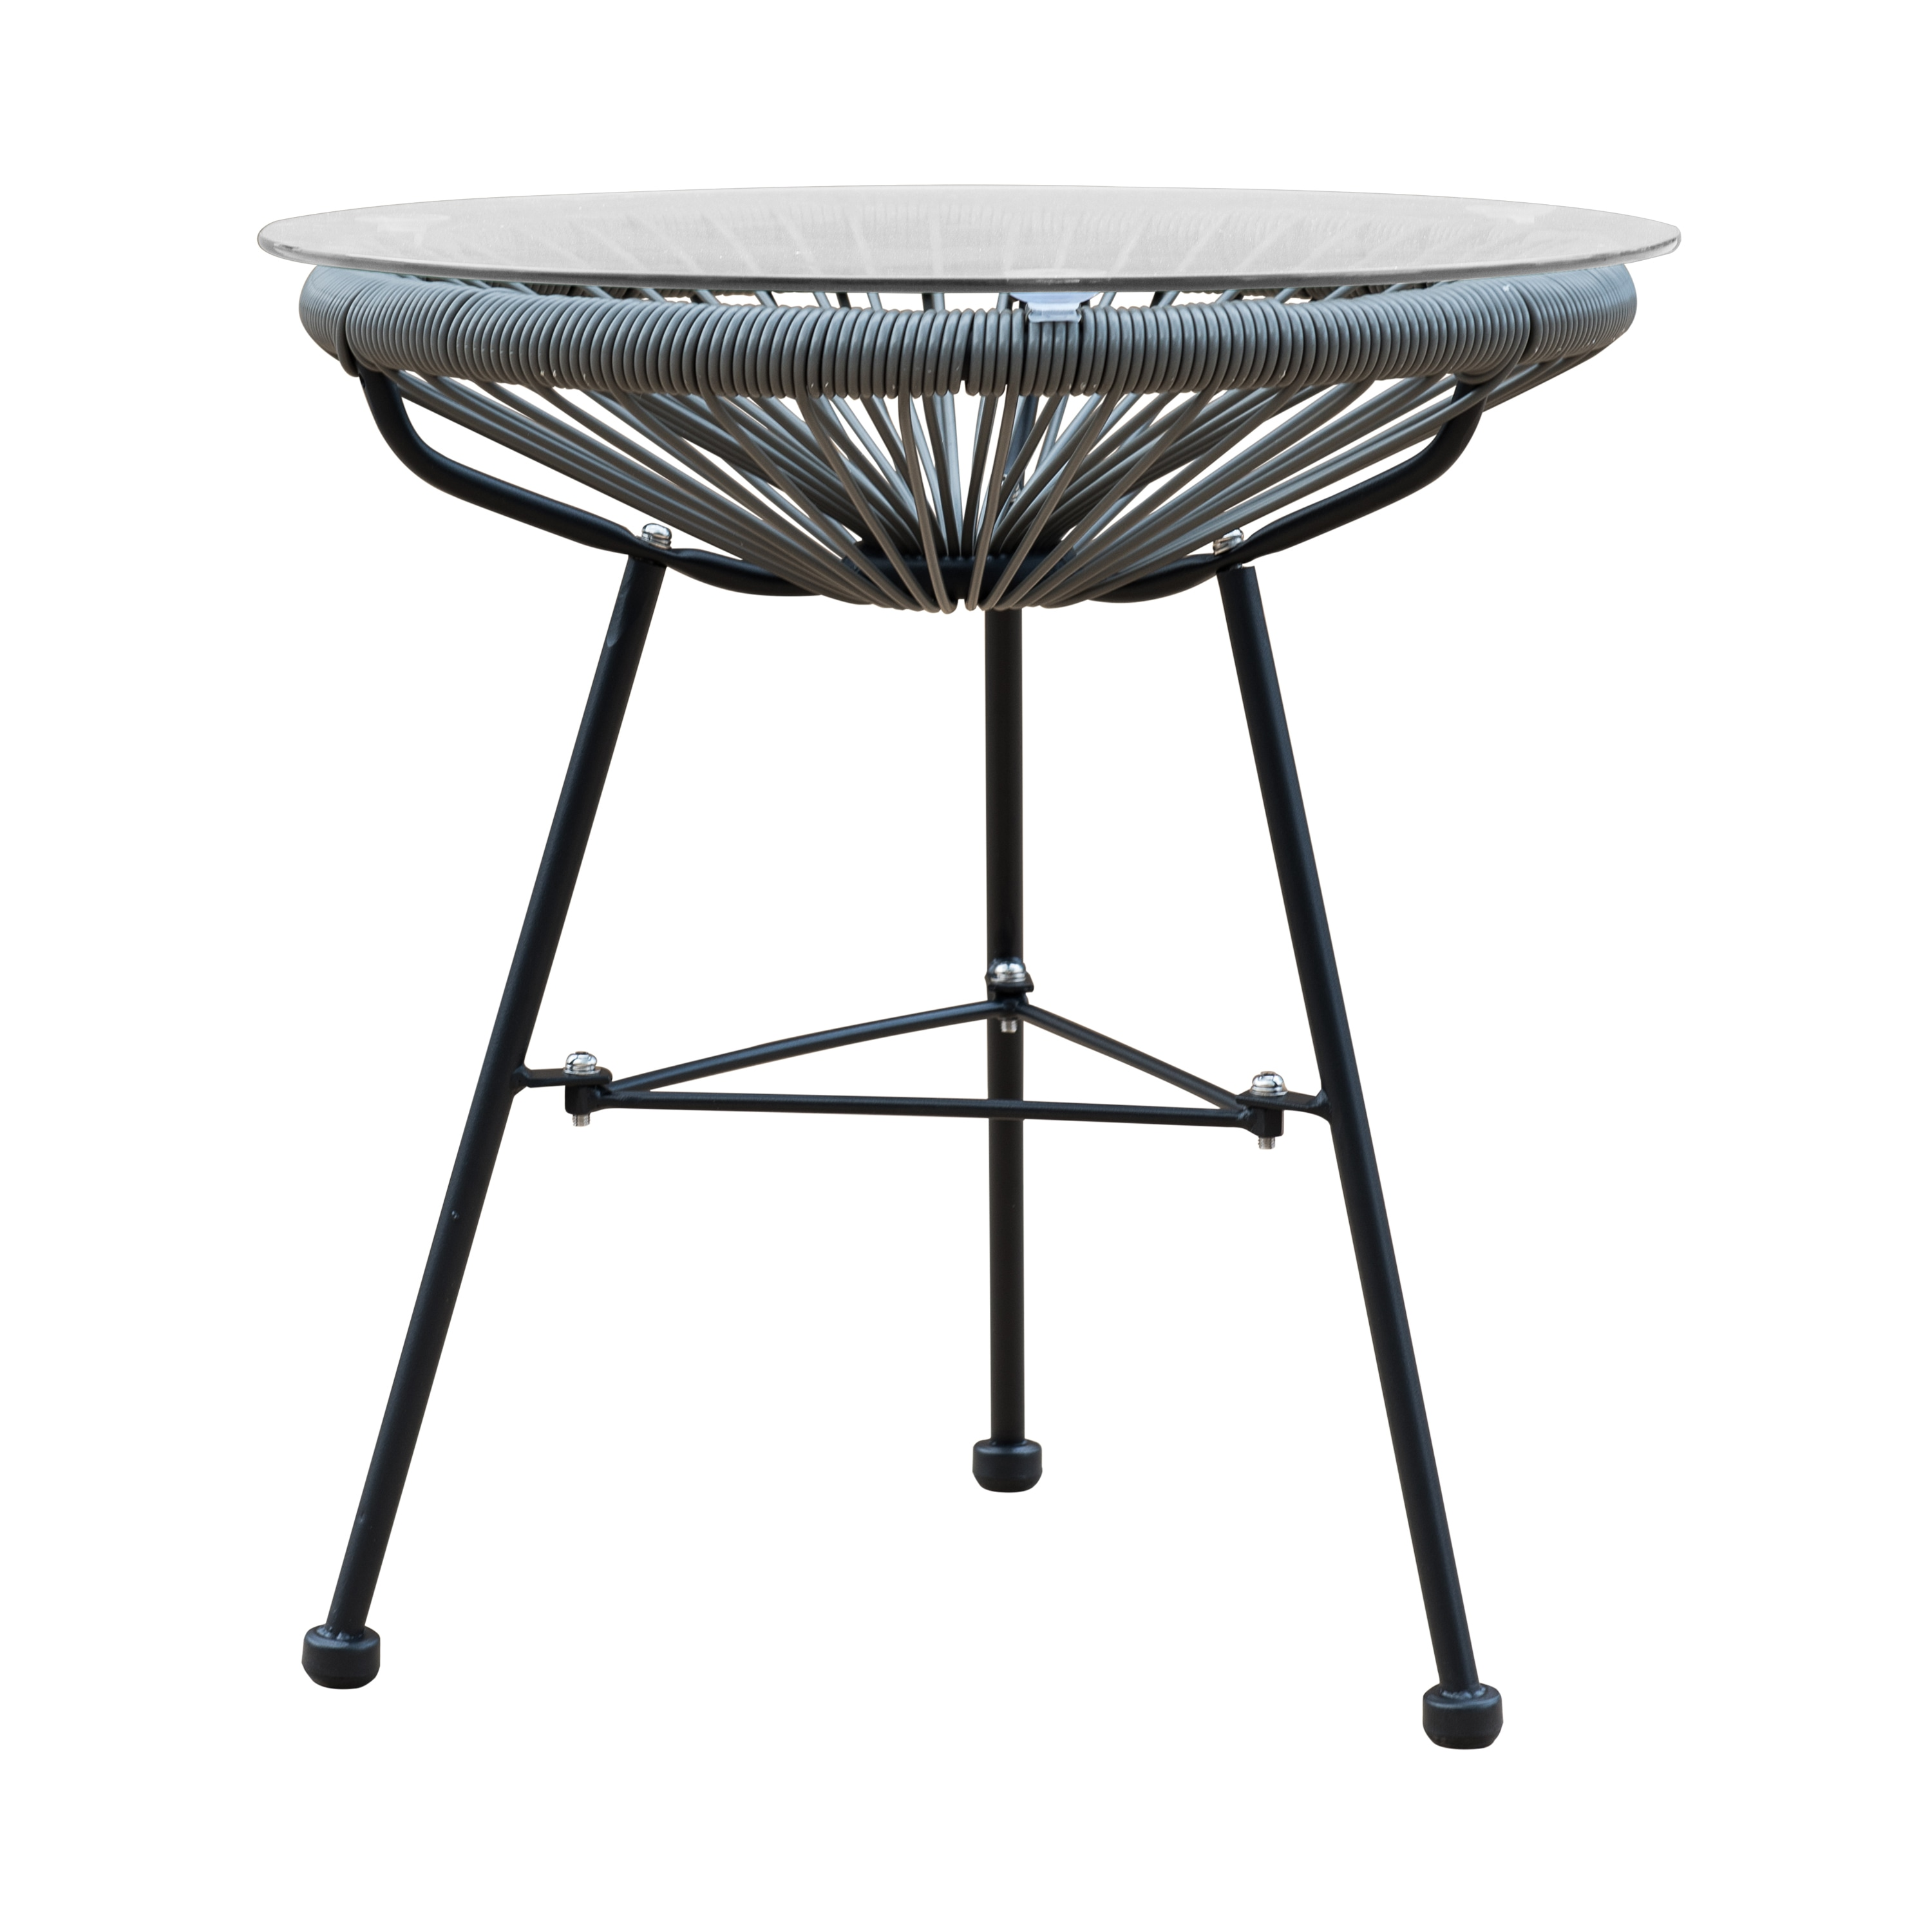 Sarcelles Modern Woven Wicker Patio Side Table With Gl Top By Corvus On Free Shipping Today 17958315